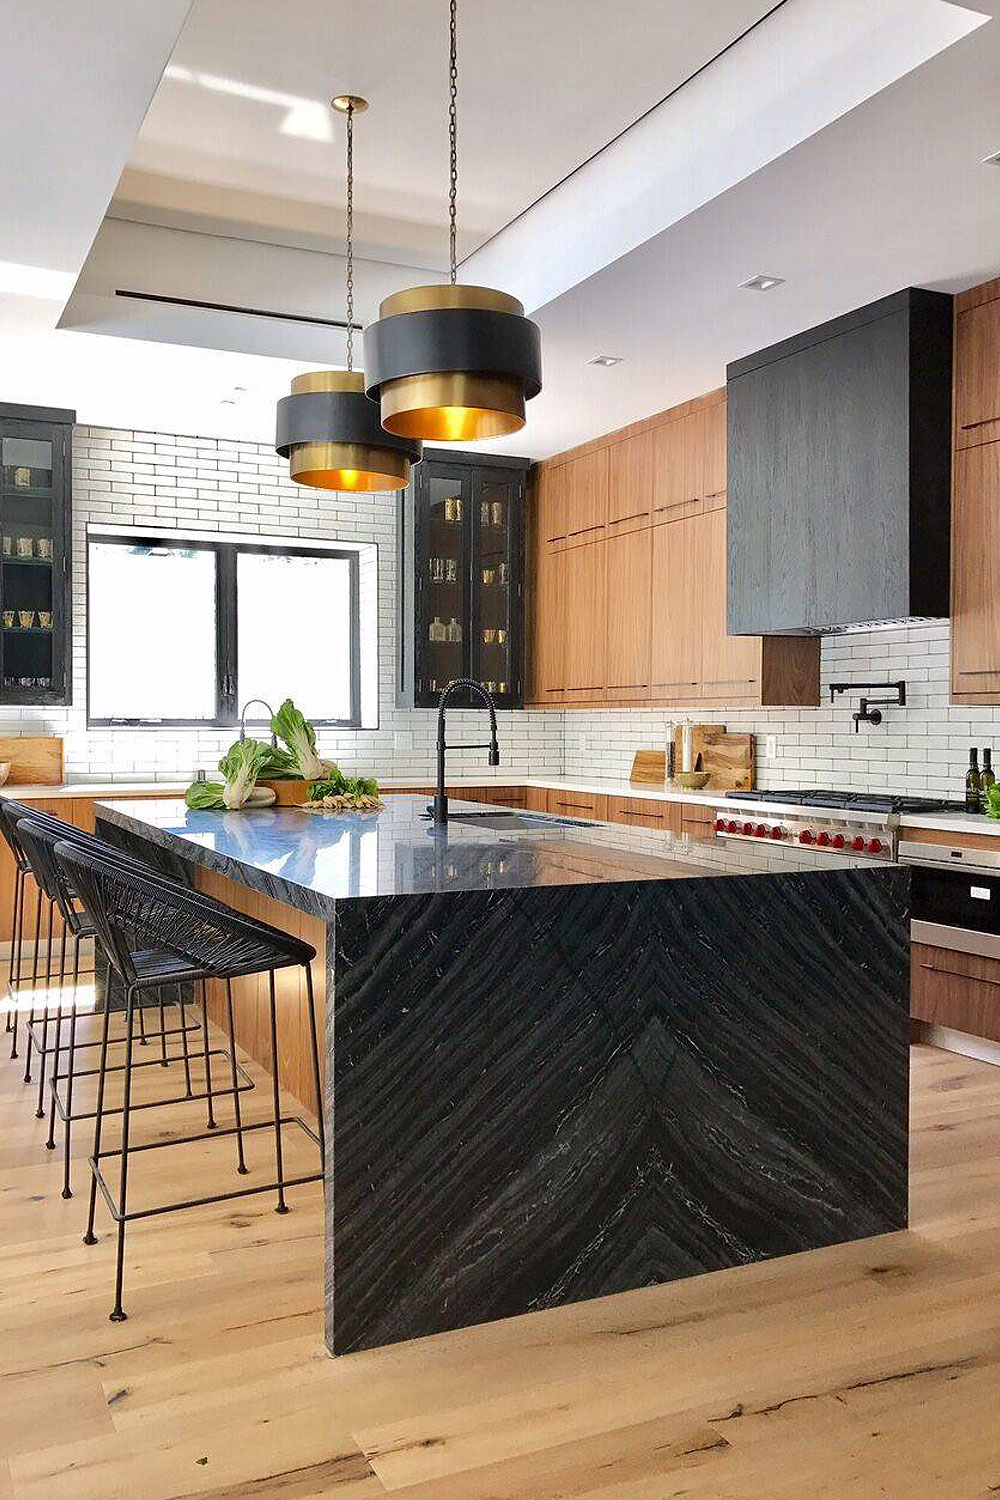 50 Black Countertop Backsplash Ideas Tile Designs Tips Advice